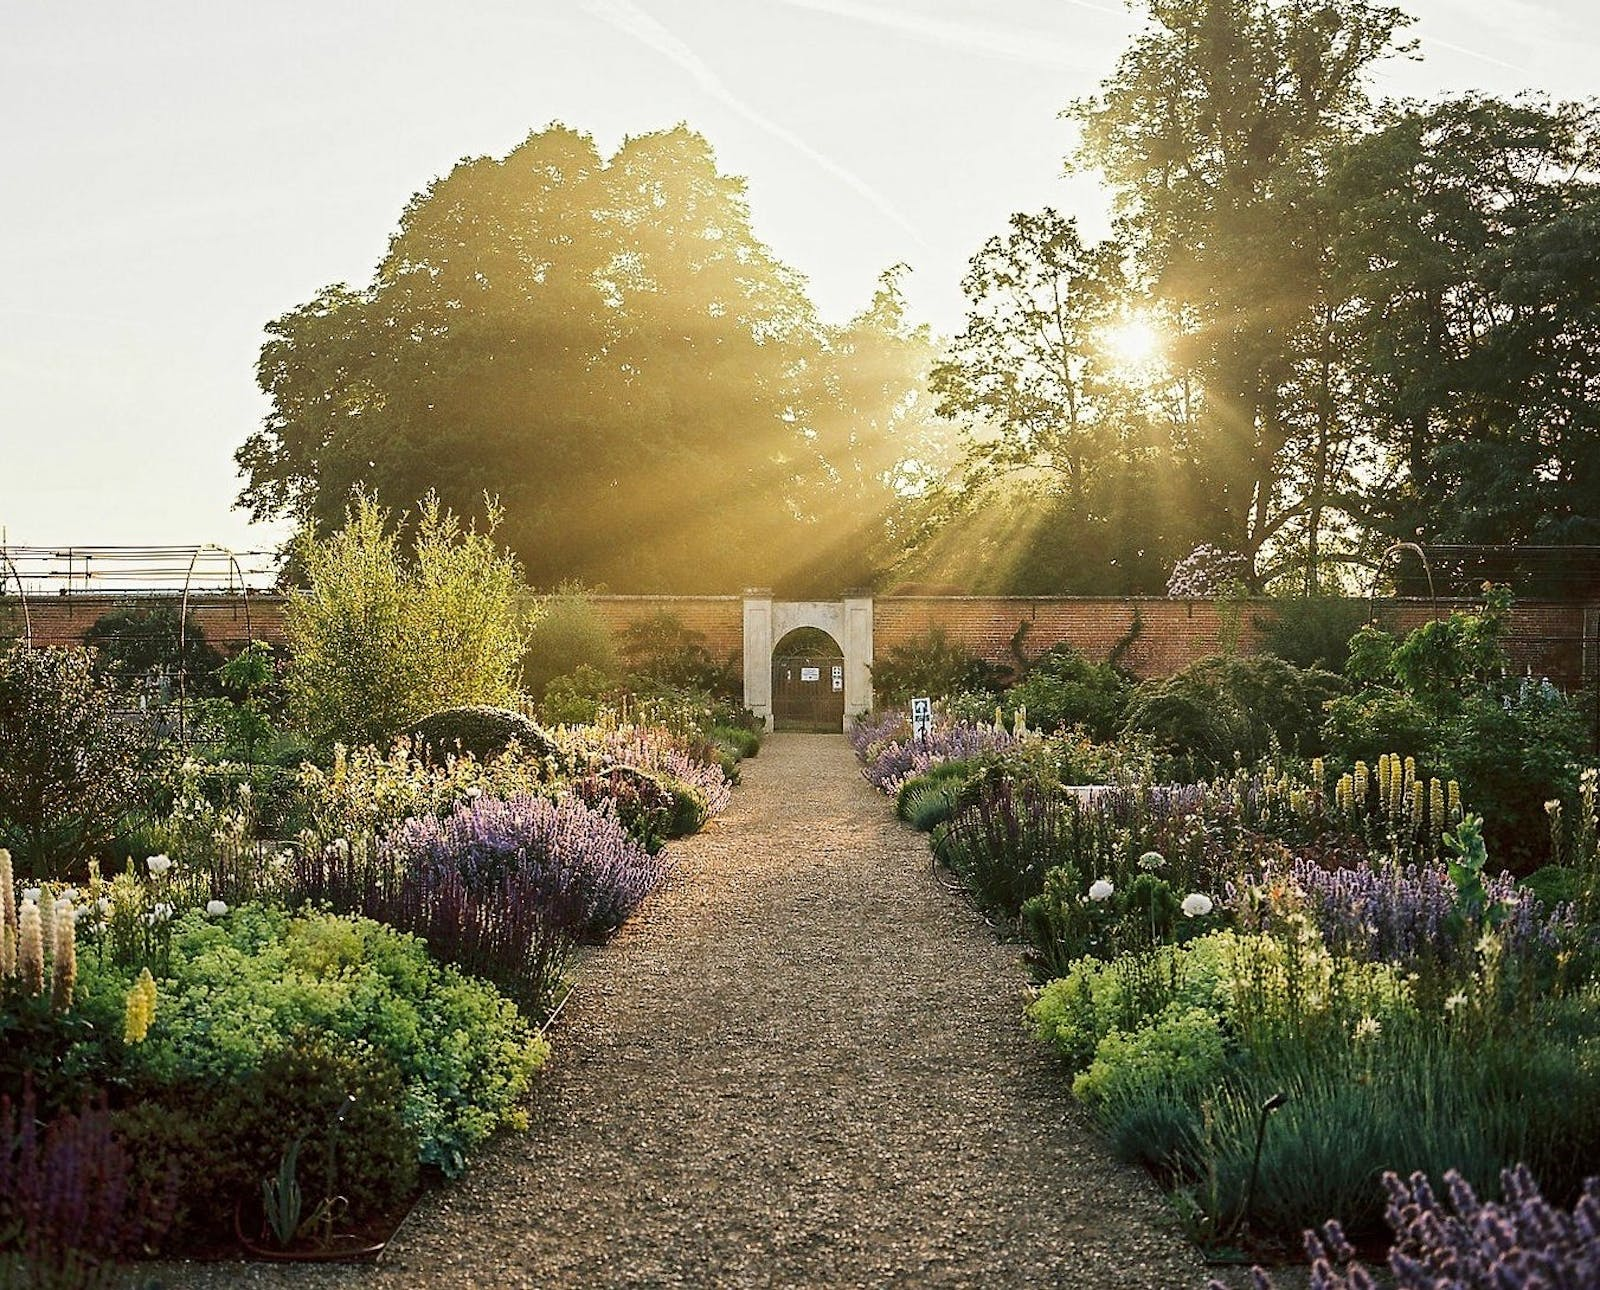 Sunlit gardens at Heckfield Place in Hampshire